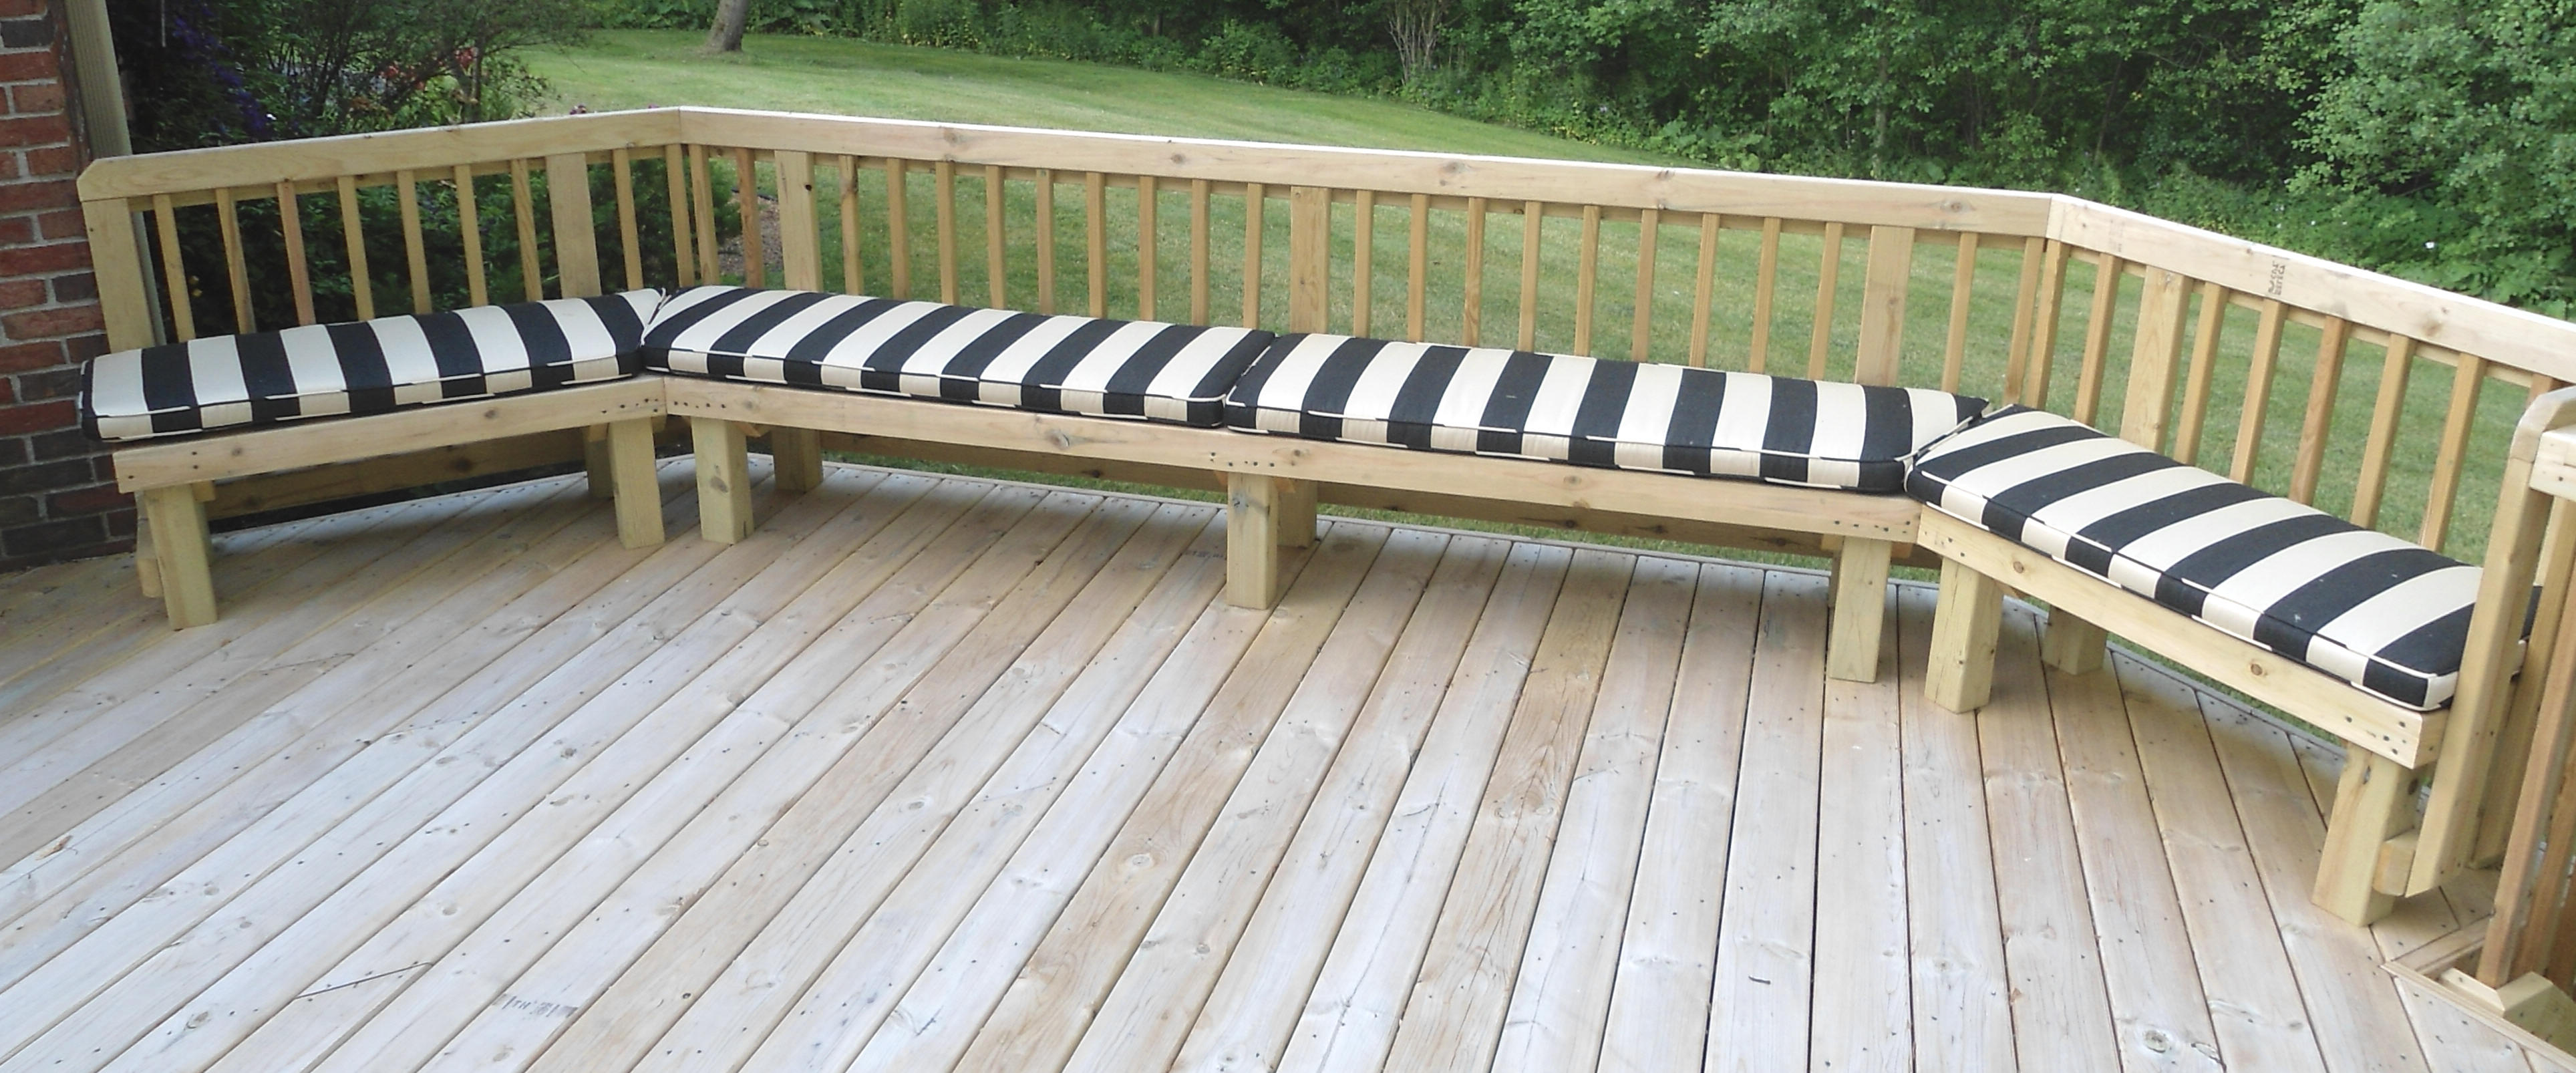 How To Waterproof Wood Furniture For Outdoors Use Painted